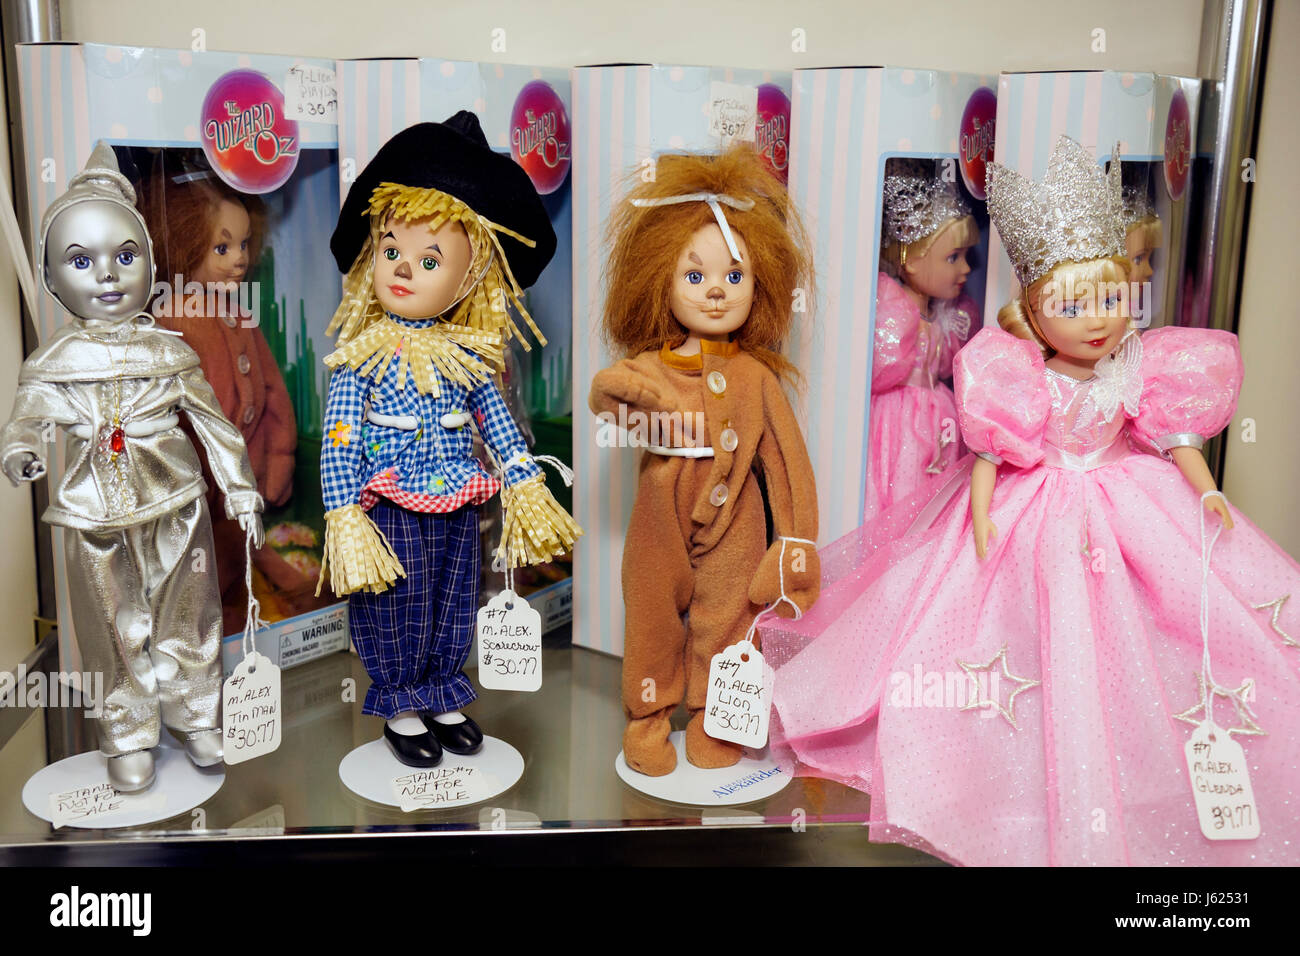 Indiana Chesterton Yellow Brick Road Gift Shop and Wizard of Oz Fantasy Museum dolls characters children's literature - Stock Image